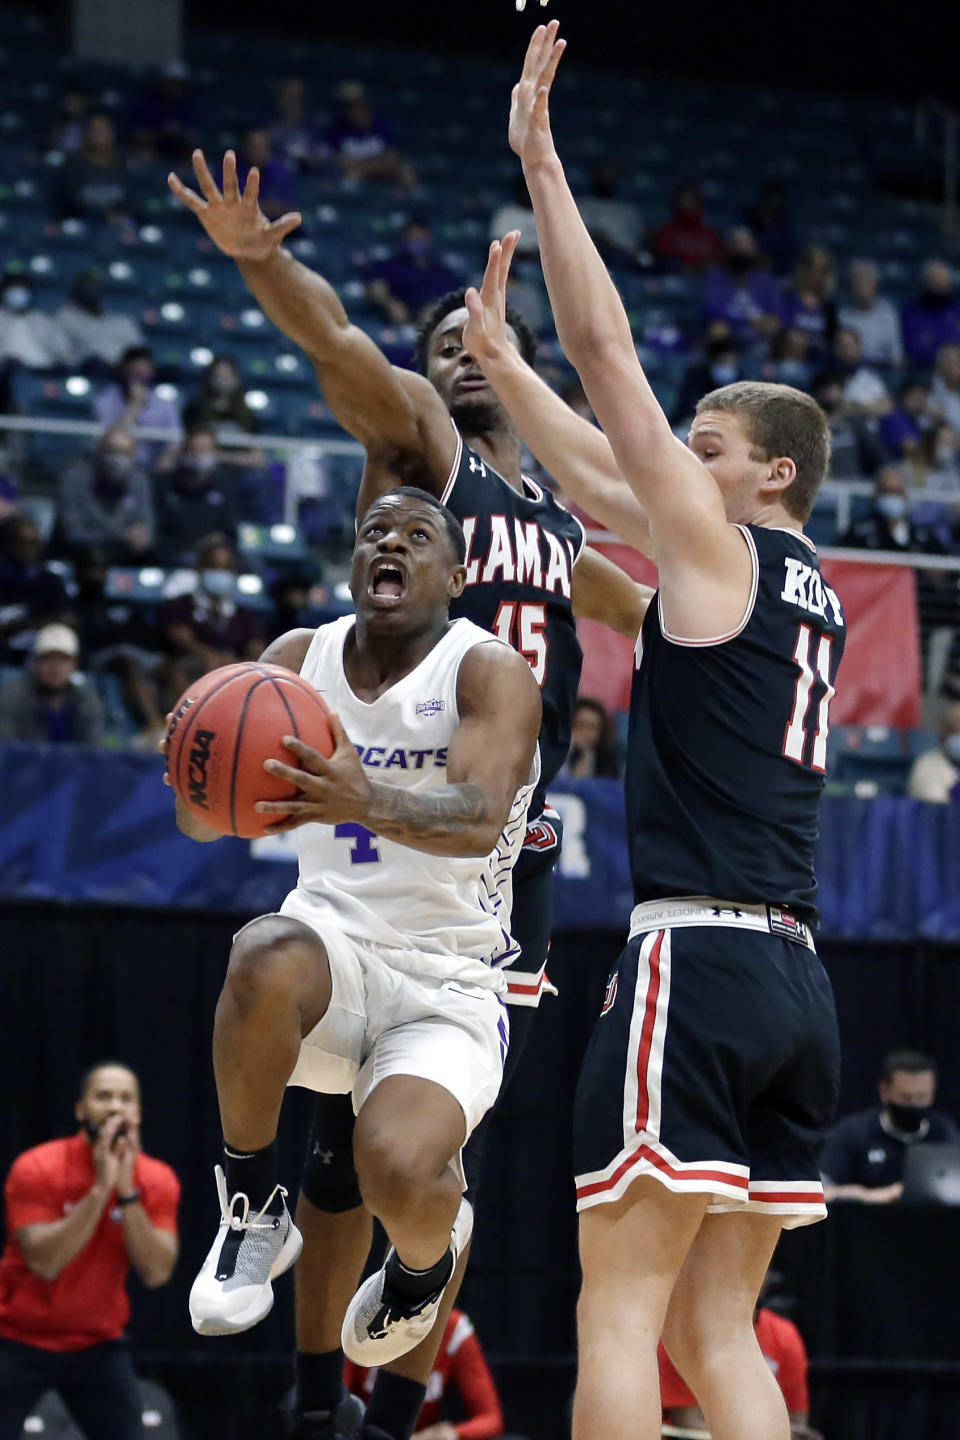 Abilene Christian guard Damien Daniels (4) shoots in front of Lamar forward Lincoln Smith (15) and guard Anderson Kopp (11) during the first half of an NCAA college basketball game in the Southland Conference semifinals Friday, March 12, 2021, in Katy, Texas. (AP Photo/Michael Wyke)